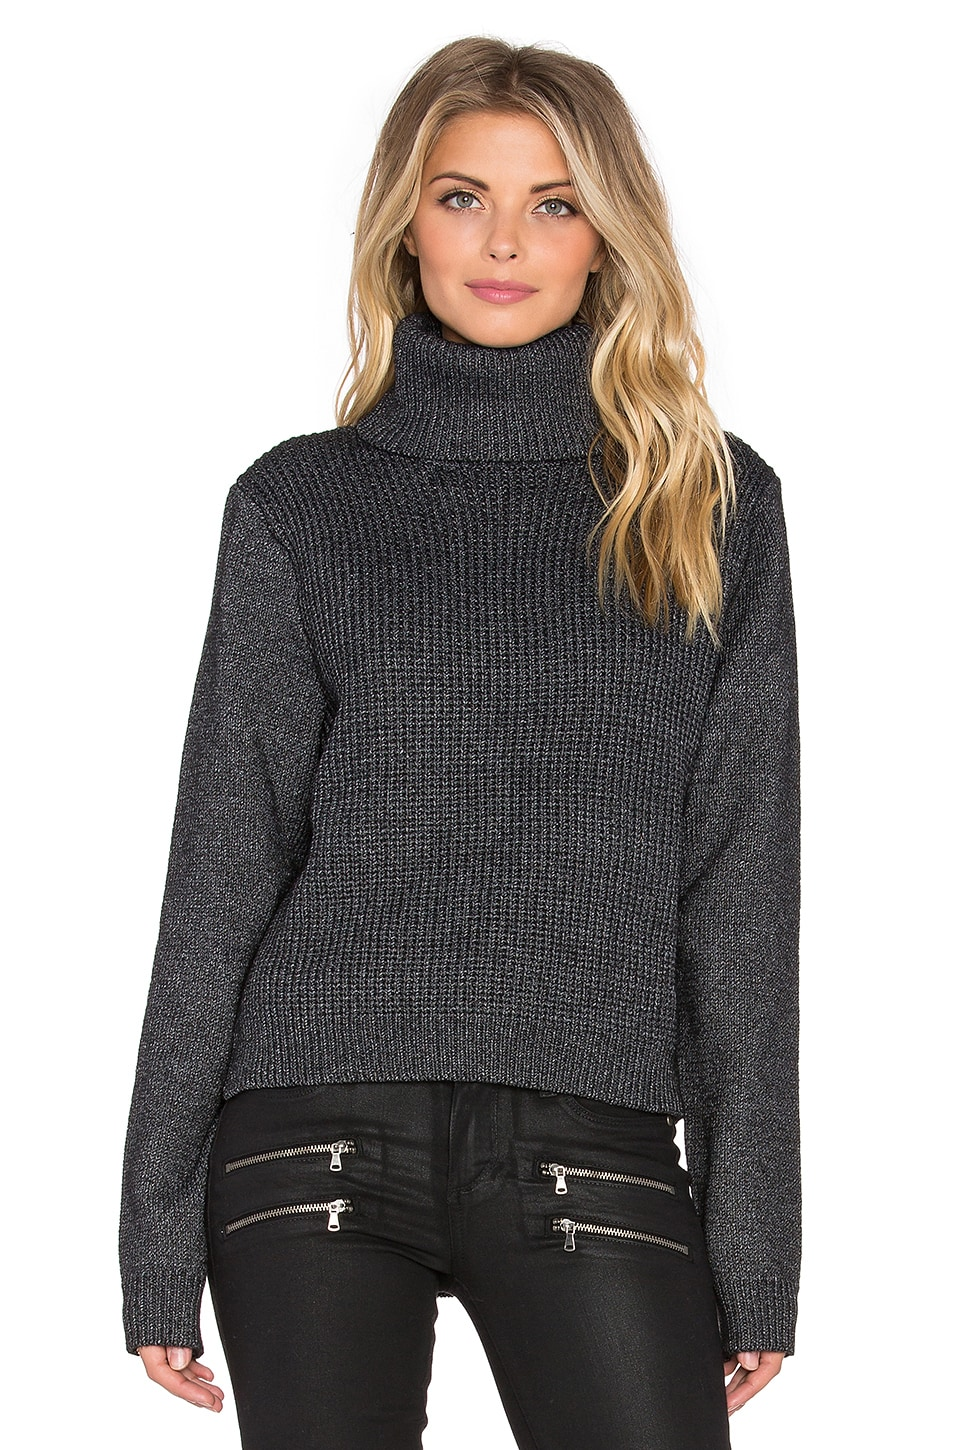 John & Jenn by Line Tevin Turtleneck Sweater in Caviar